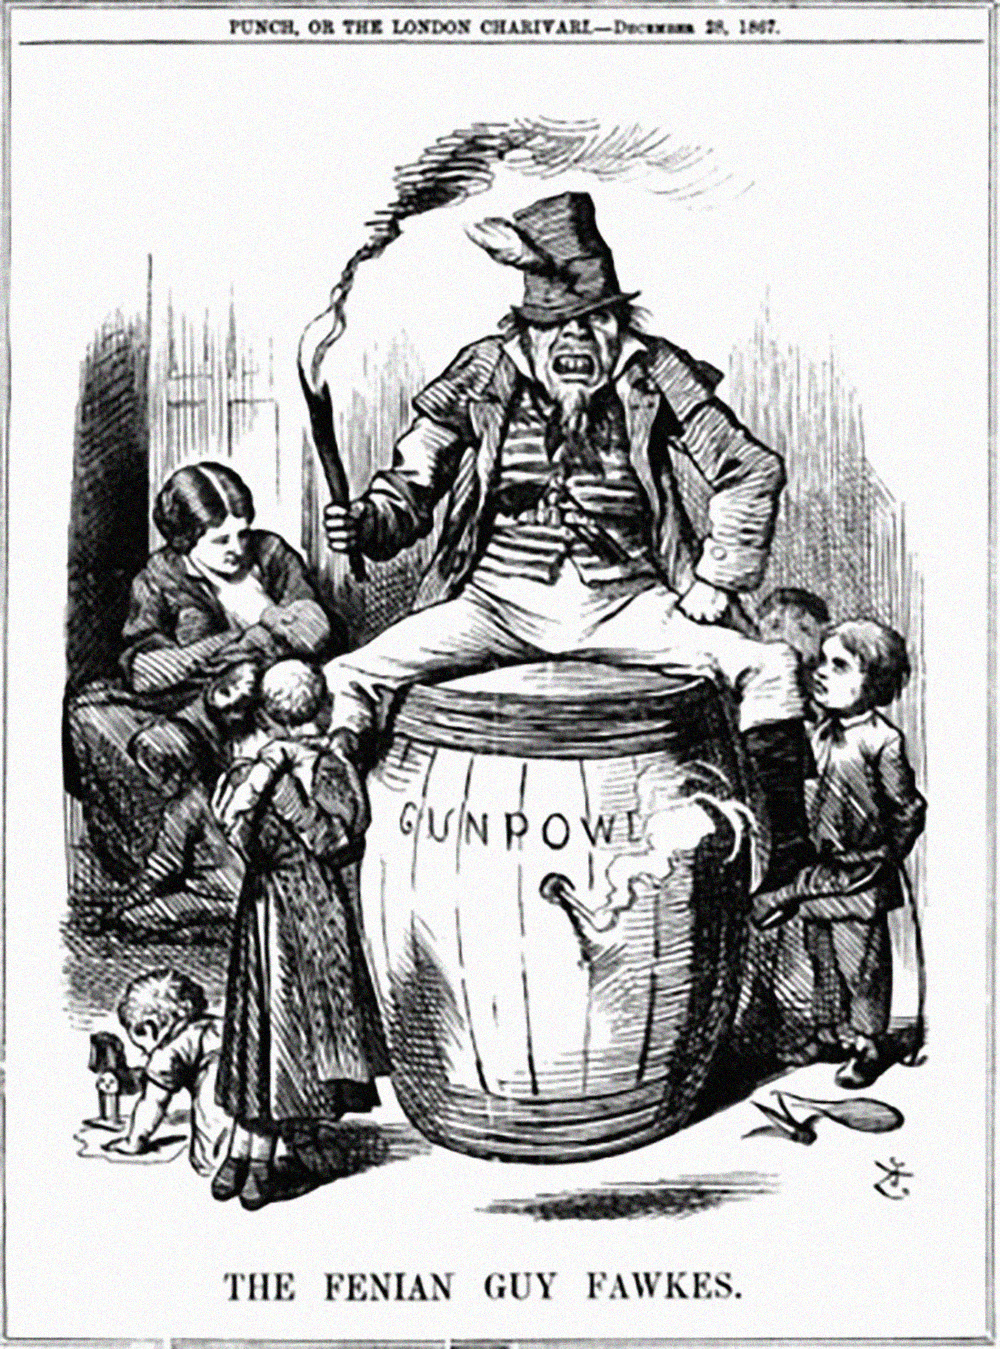 """The Fenian Guy Fawkes"" by John Tenniel, published in Punch magazine, on 28 December 1867 (Public Domain)"